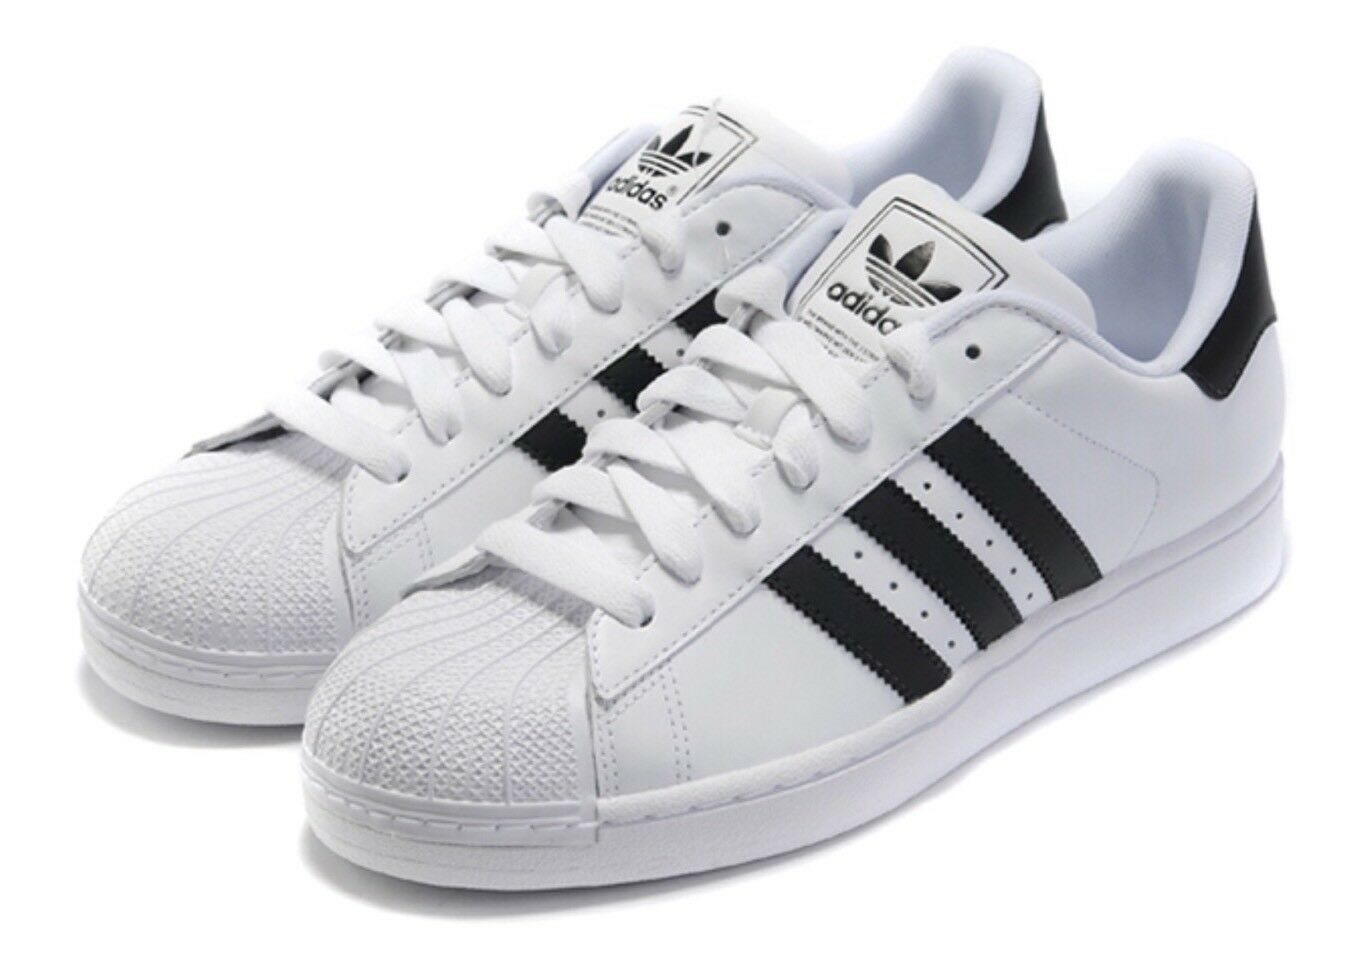 Adidas originals superstar ii 2 herren - trainer größe